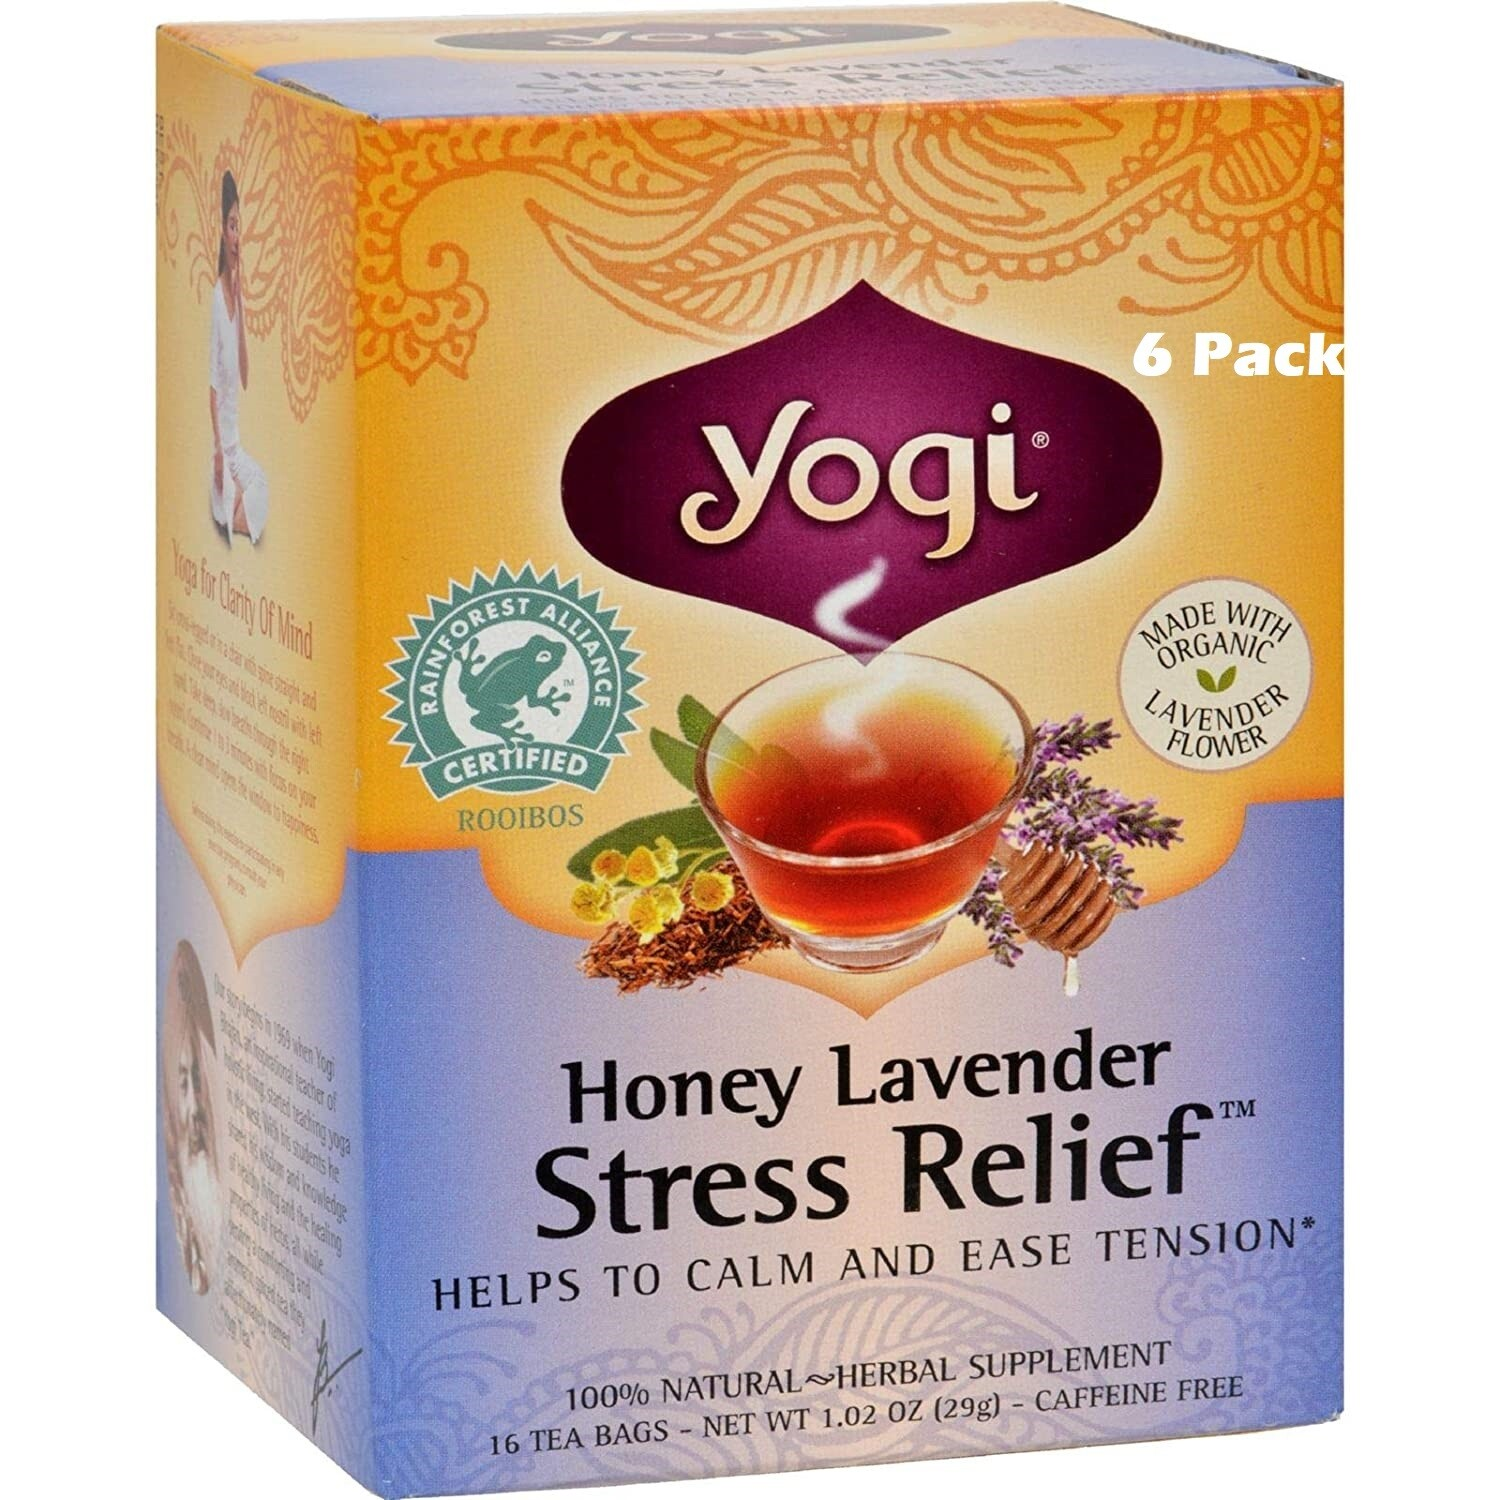 Yogi Herbal Stress Relief Tea, Honey Lavender, 16 Bags/box, Pack of 6